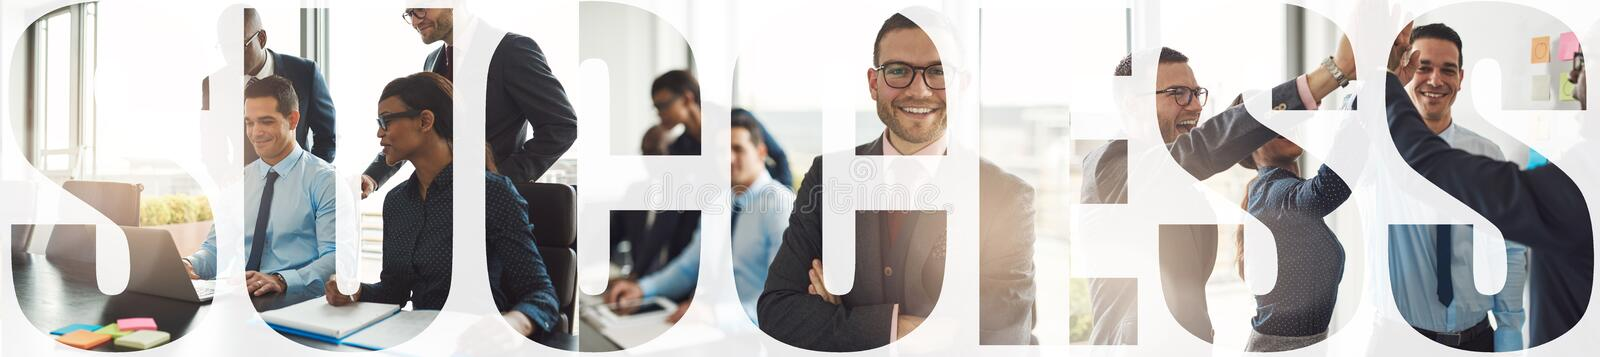 Collage of a group of successful businesspeople working together royalty free stock image